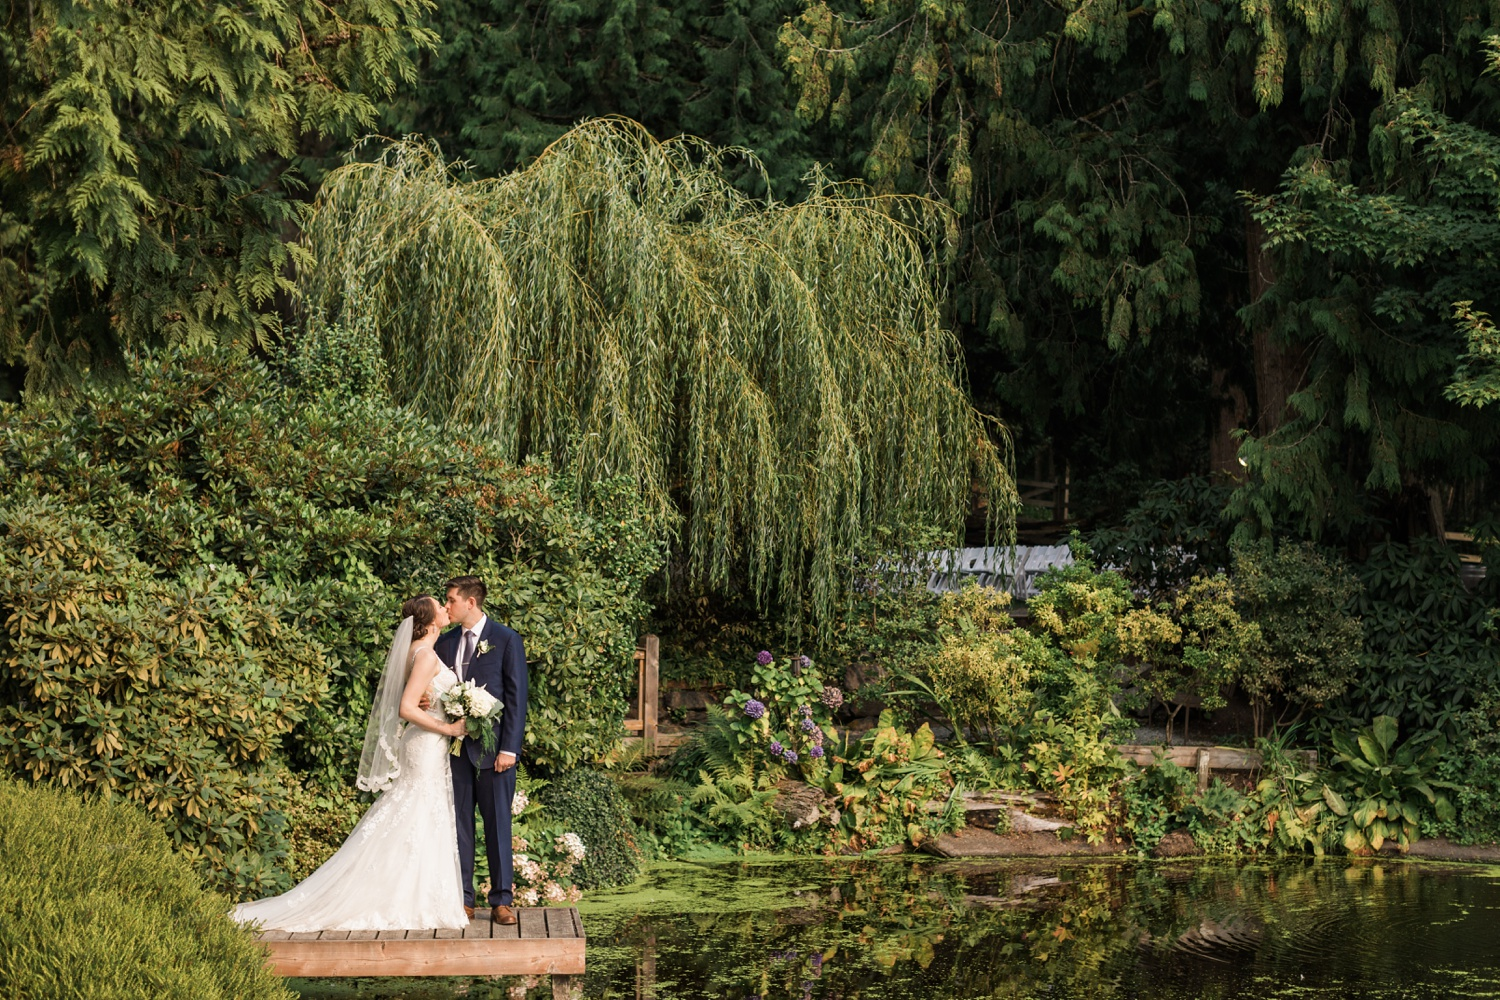 A bride and groom kiss in a beautiful garden before their wedding at Chateau Lill in Woodinville, a wedding venue near Seattle, WA.   Joanna Monger Photography   Seattle & Snohomish Photographer